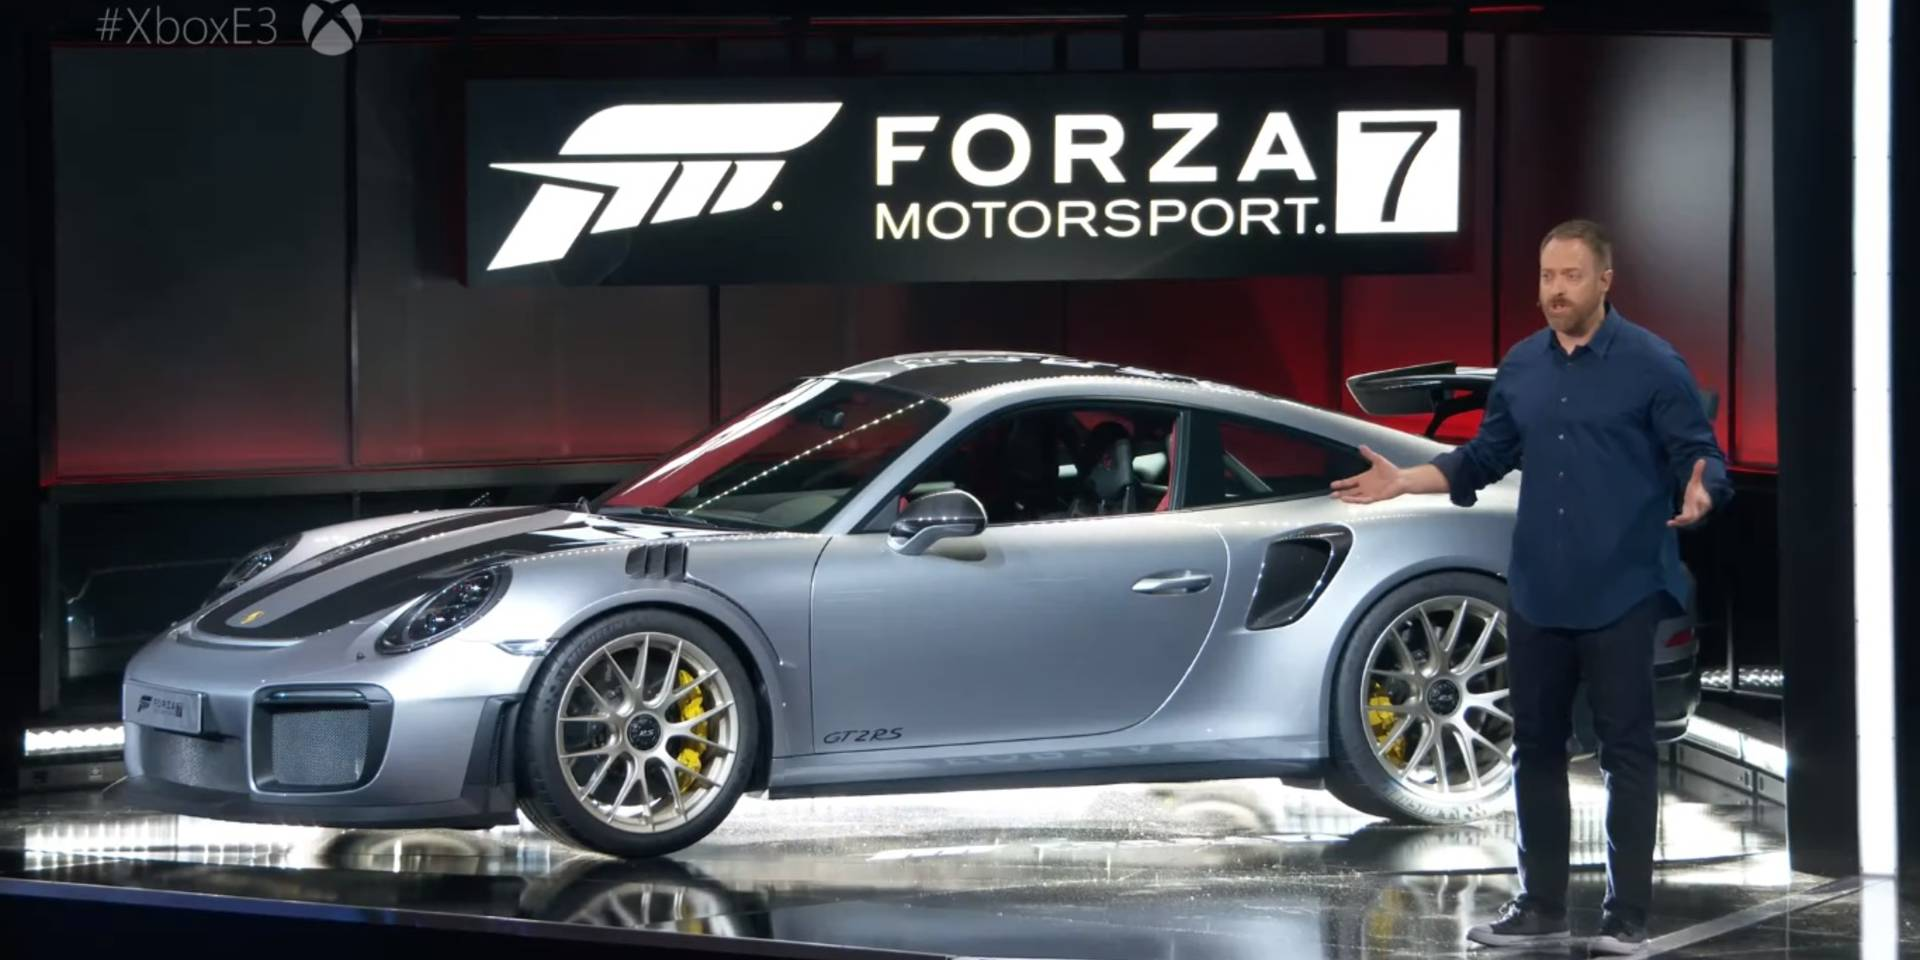 xbox e3 dan greenawalt unveils 2018 porsche 911 gt2 rs to the world at e3 ar12gaming. Black Bedroom Furniture Sets. Home Design Ideas